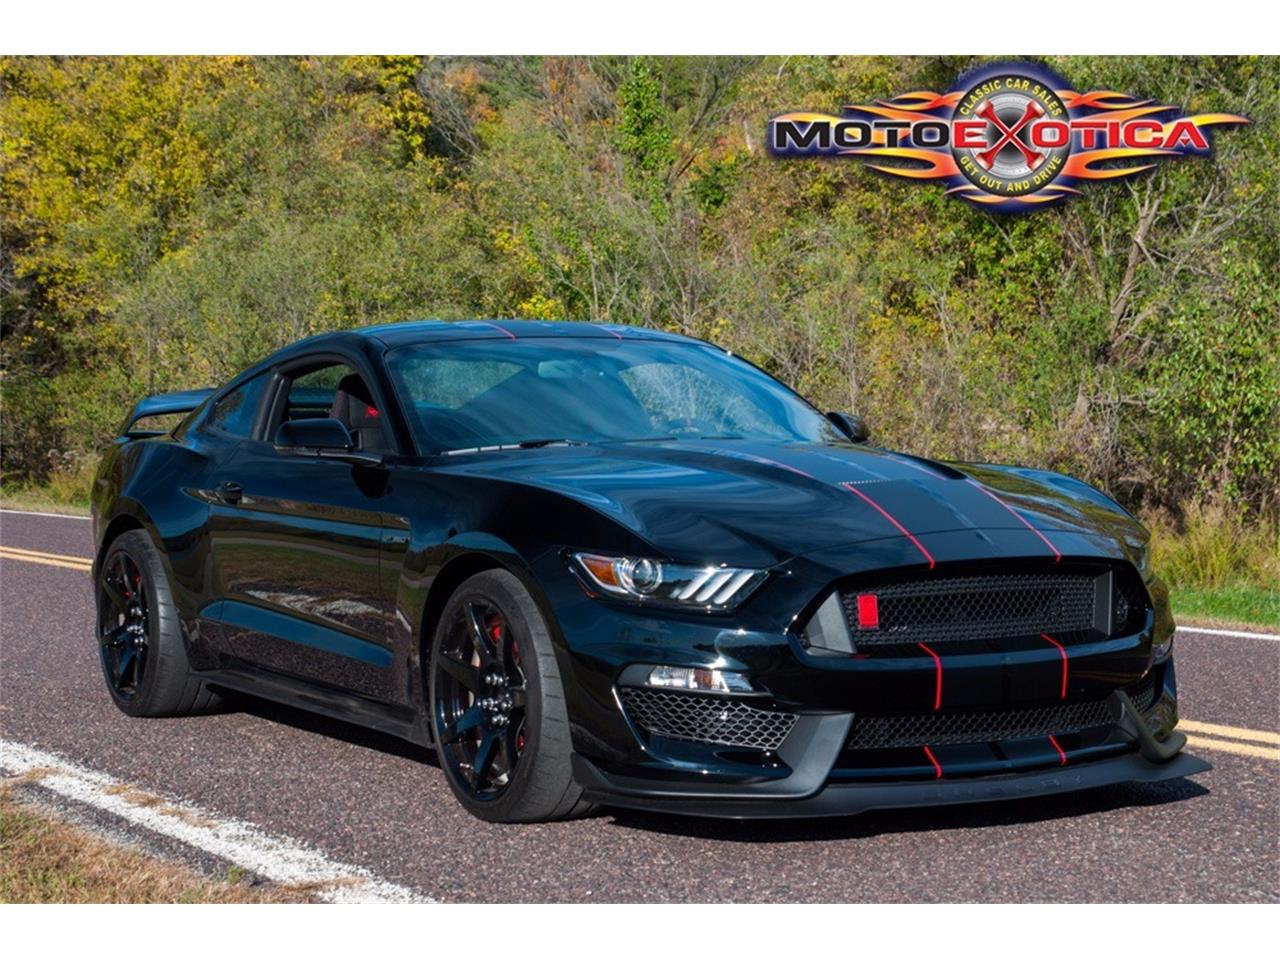 Large Picture of 2016 Ford Mustang Shelby GT350 Offered by MotoeXotica Classic Cars - MNZL